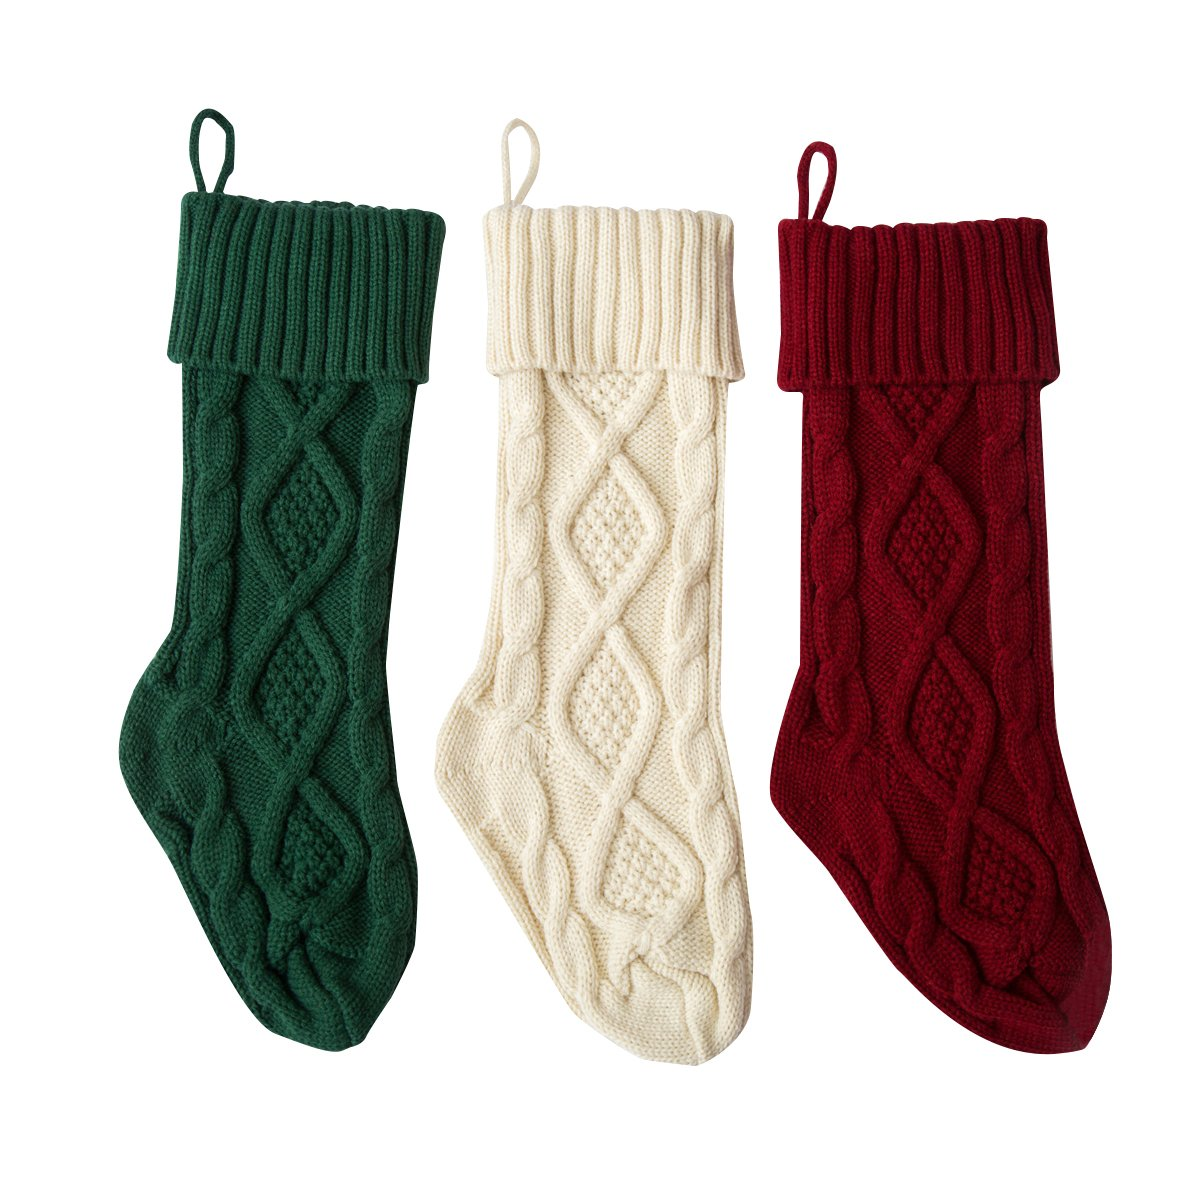 Solucky 3PC Set- 15'' Classic Christmas Knit Stockings, Christmas Decorations, White, Red and Green Sunmate